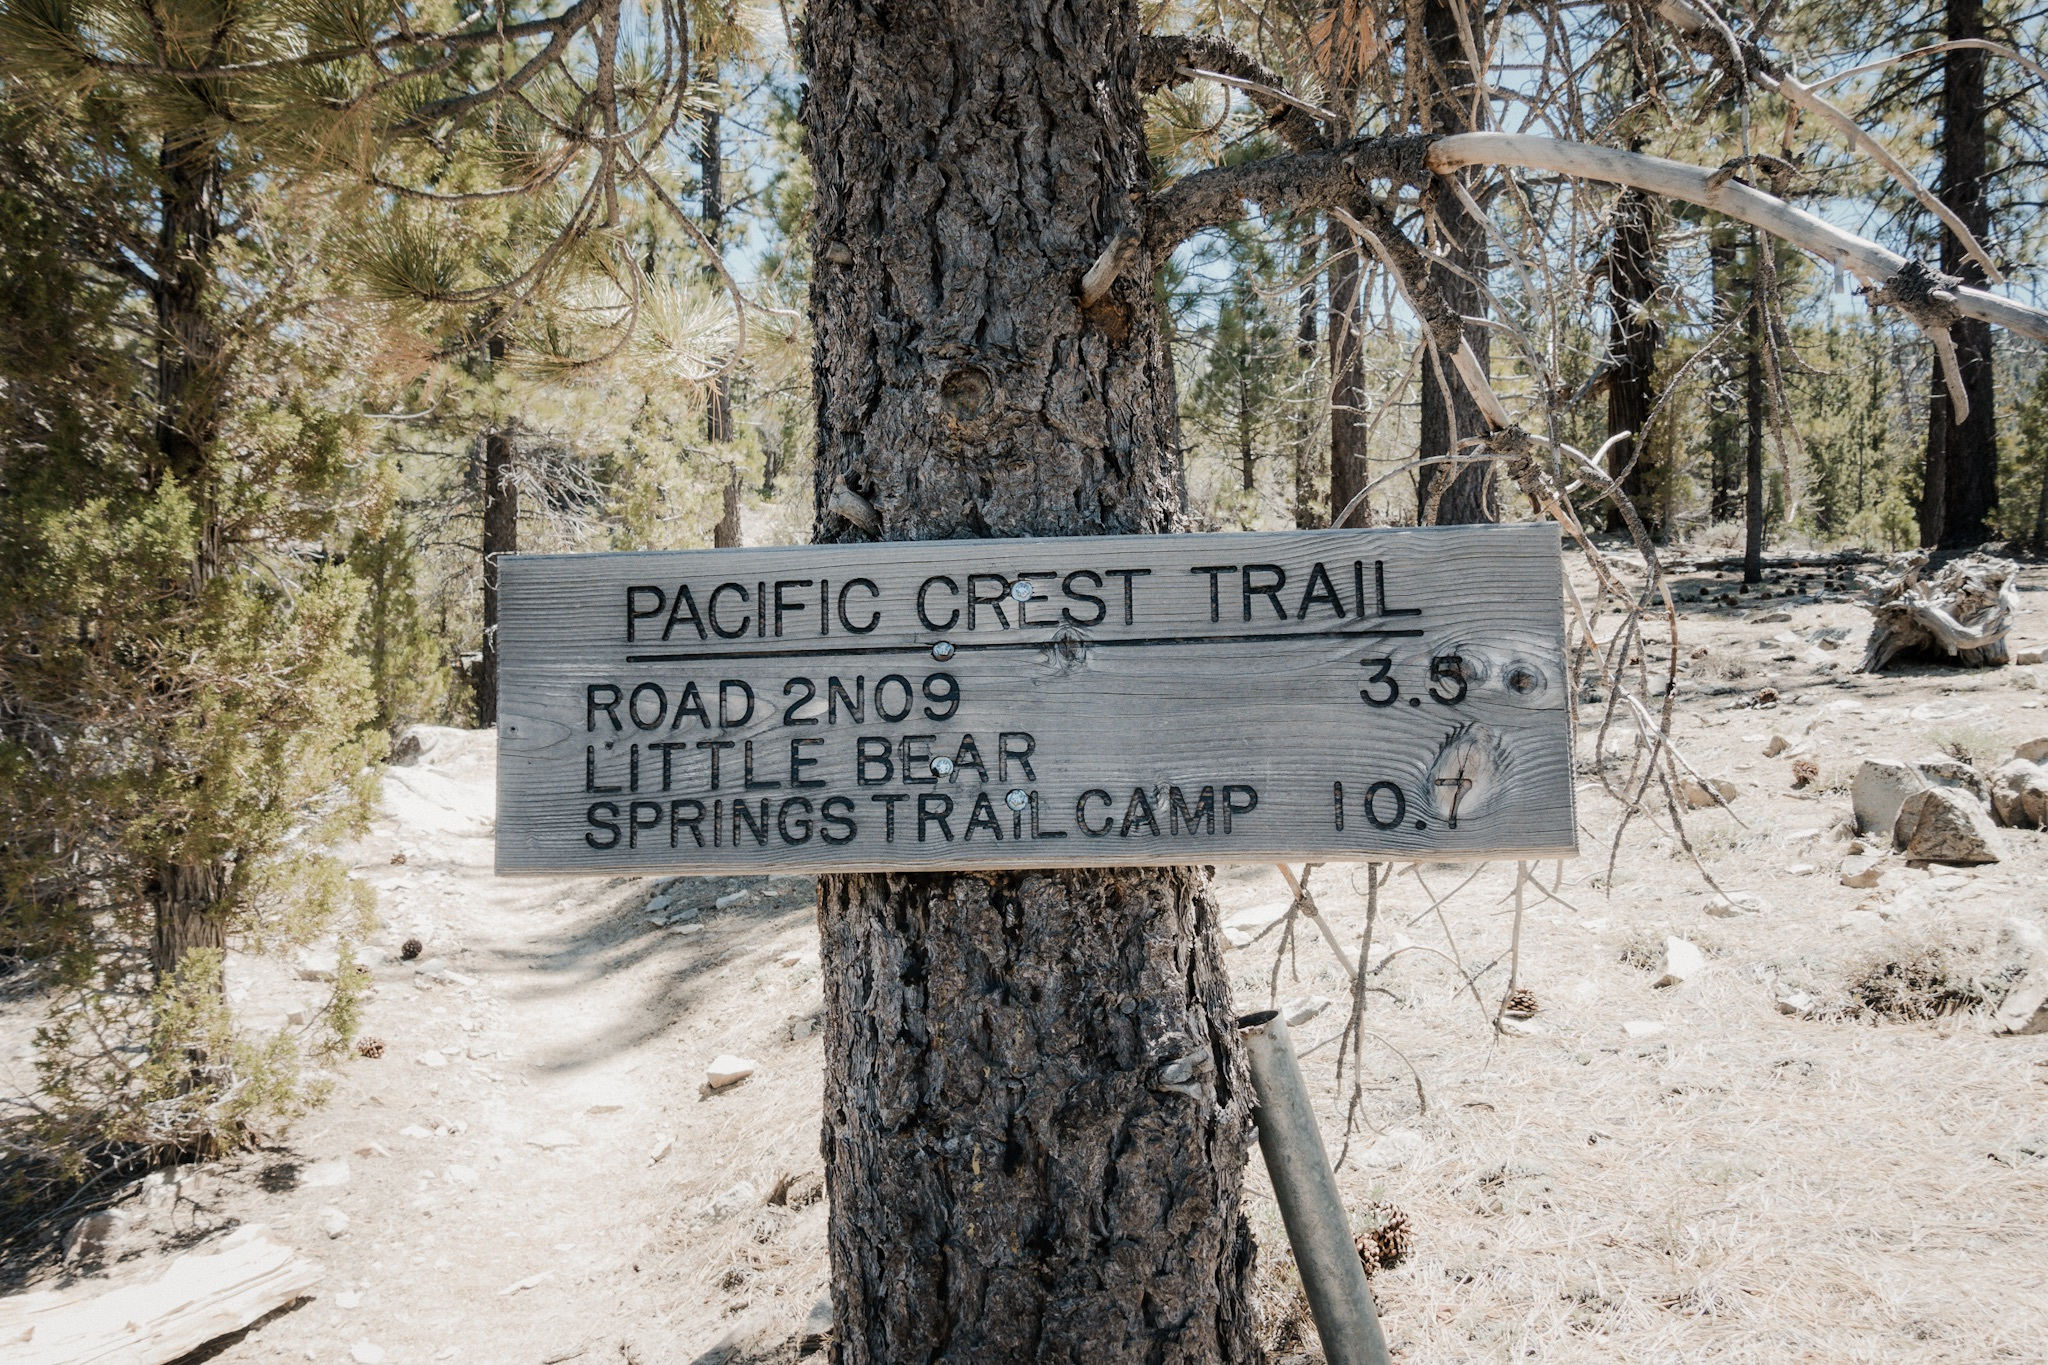 Trail signs.